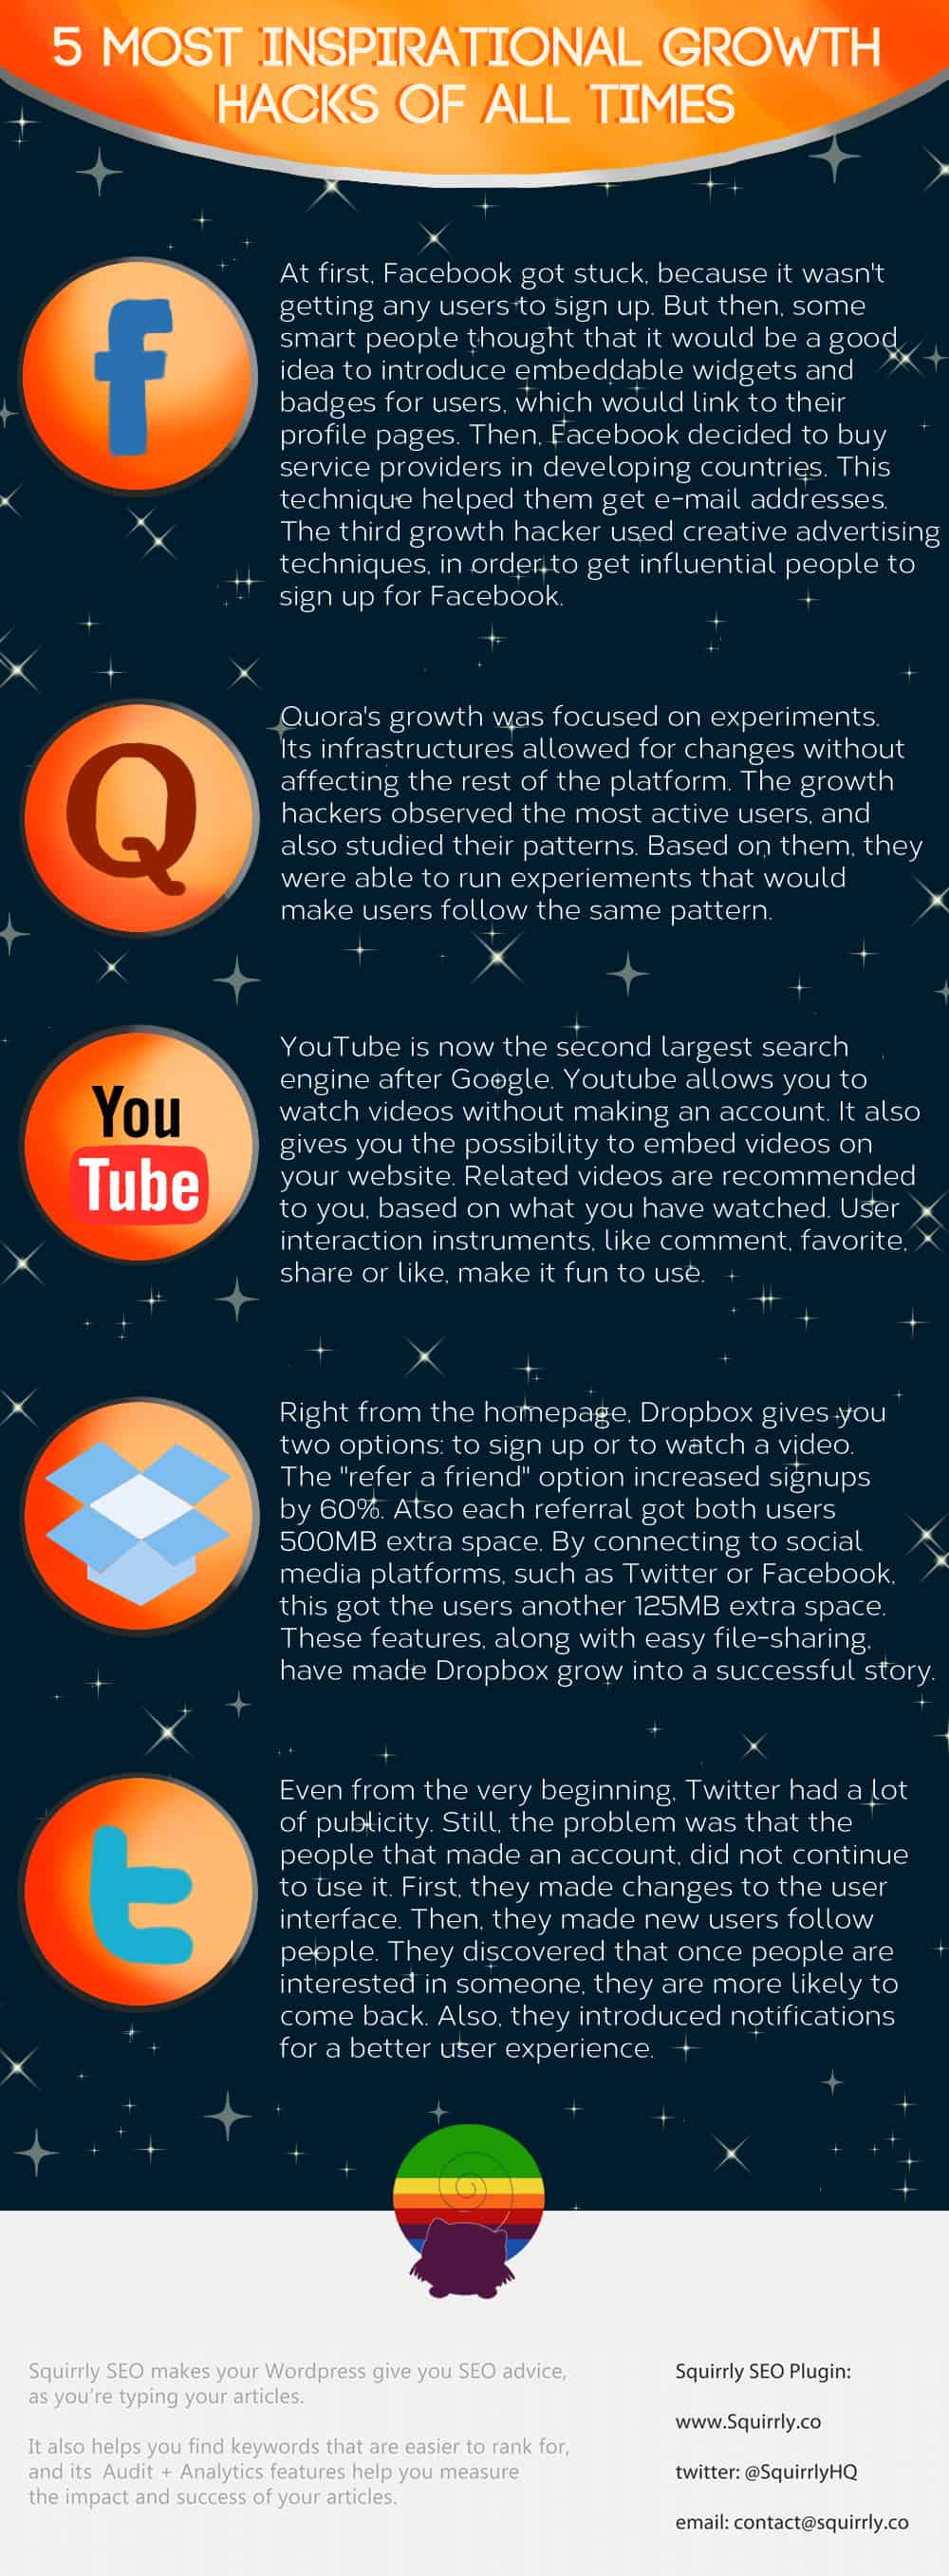 5 Most Inspirational Growth Hacks of All Times